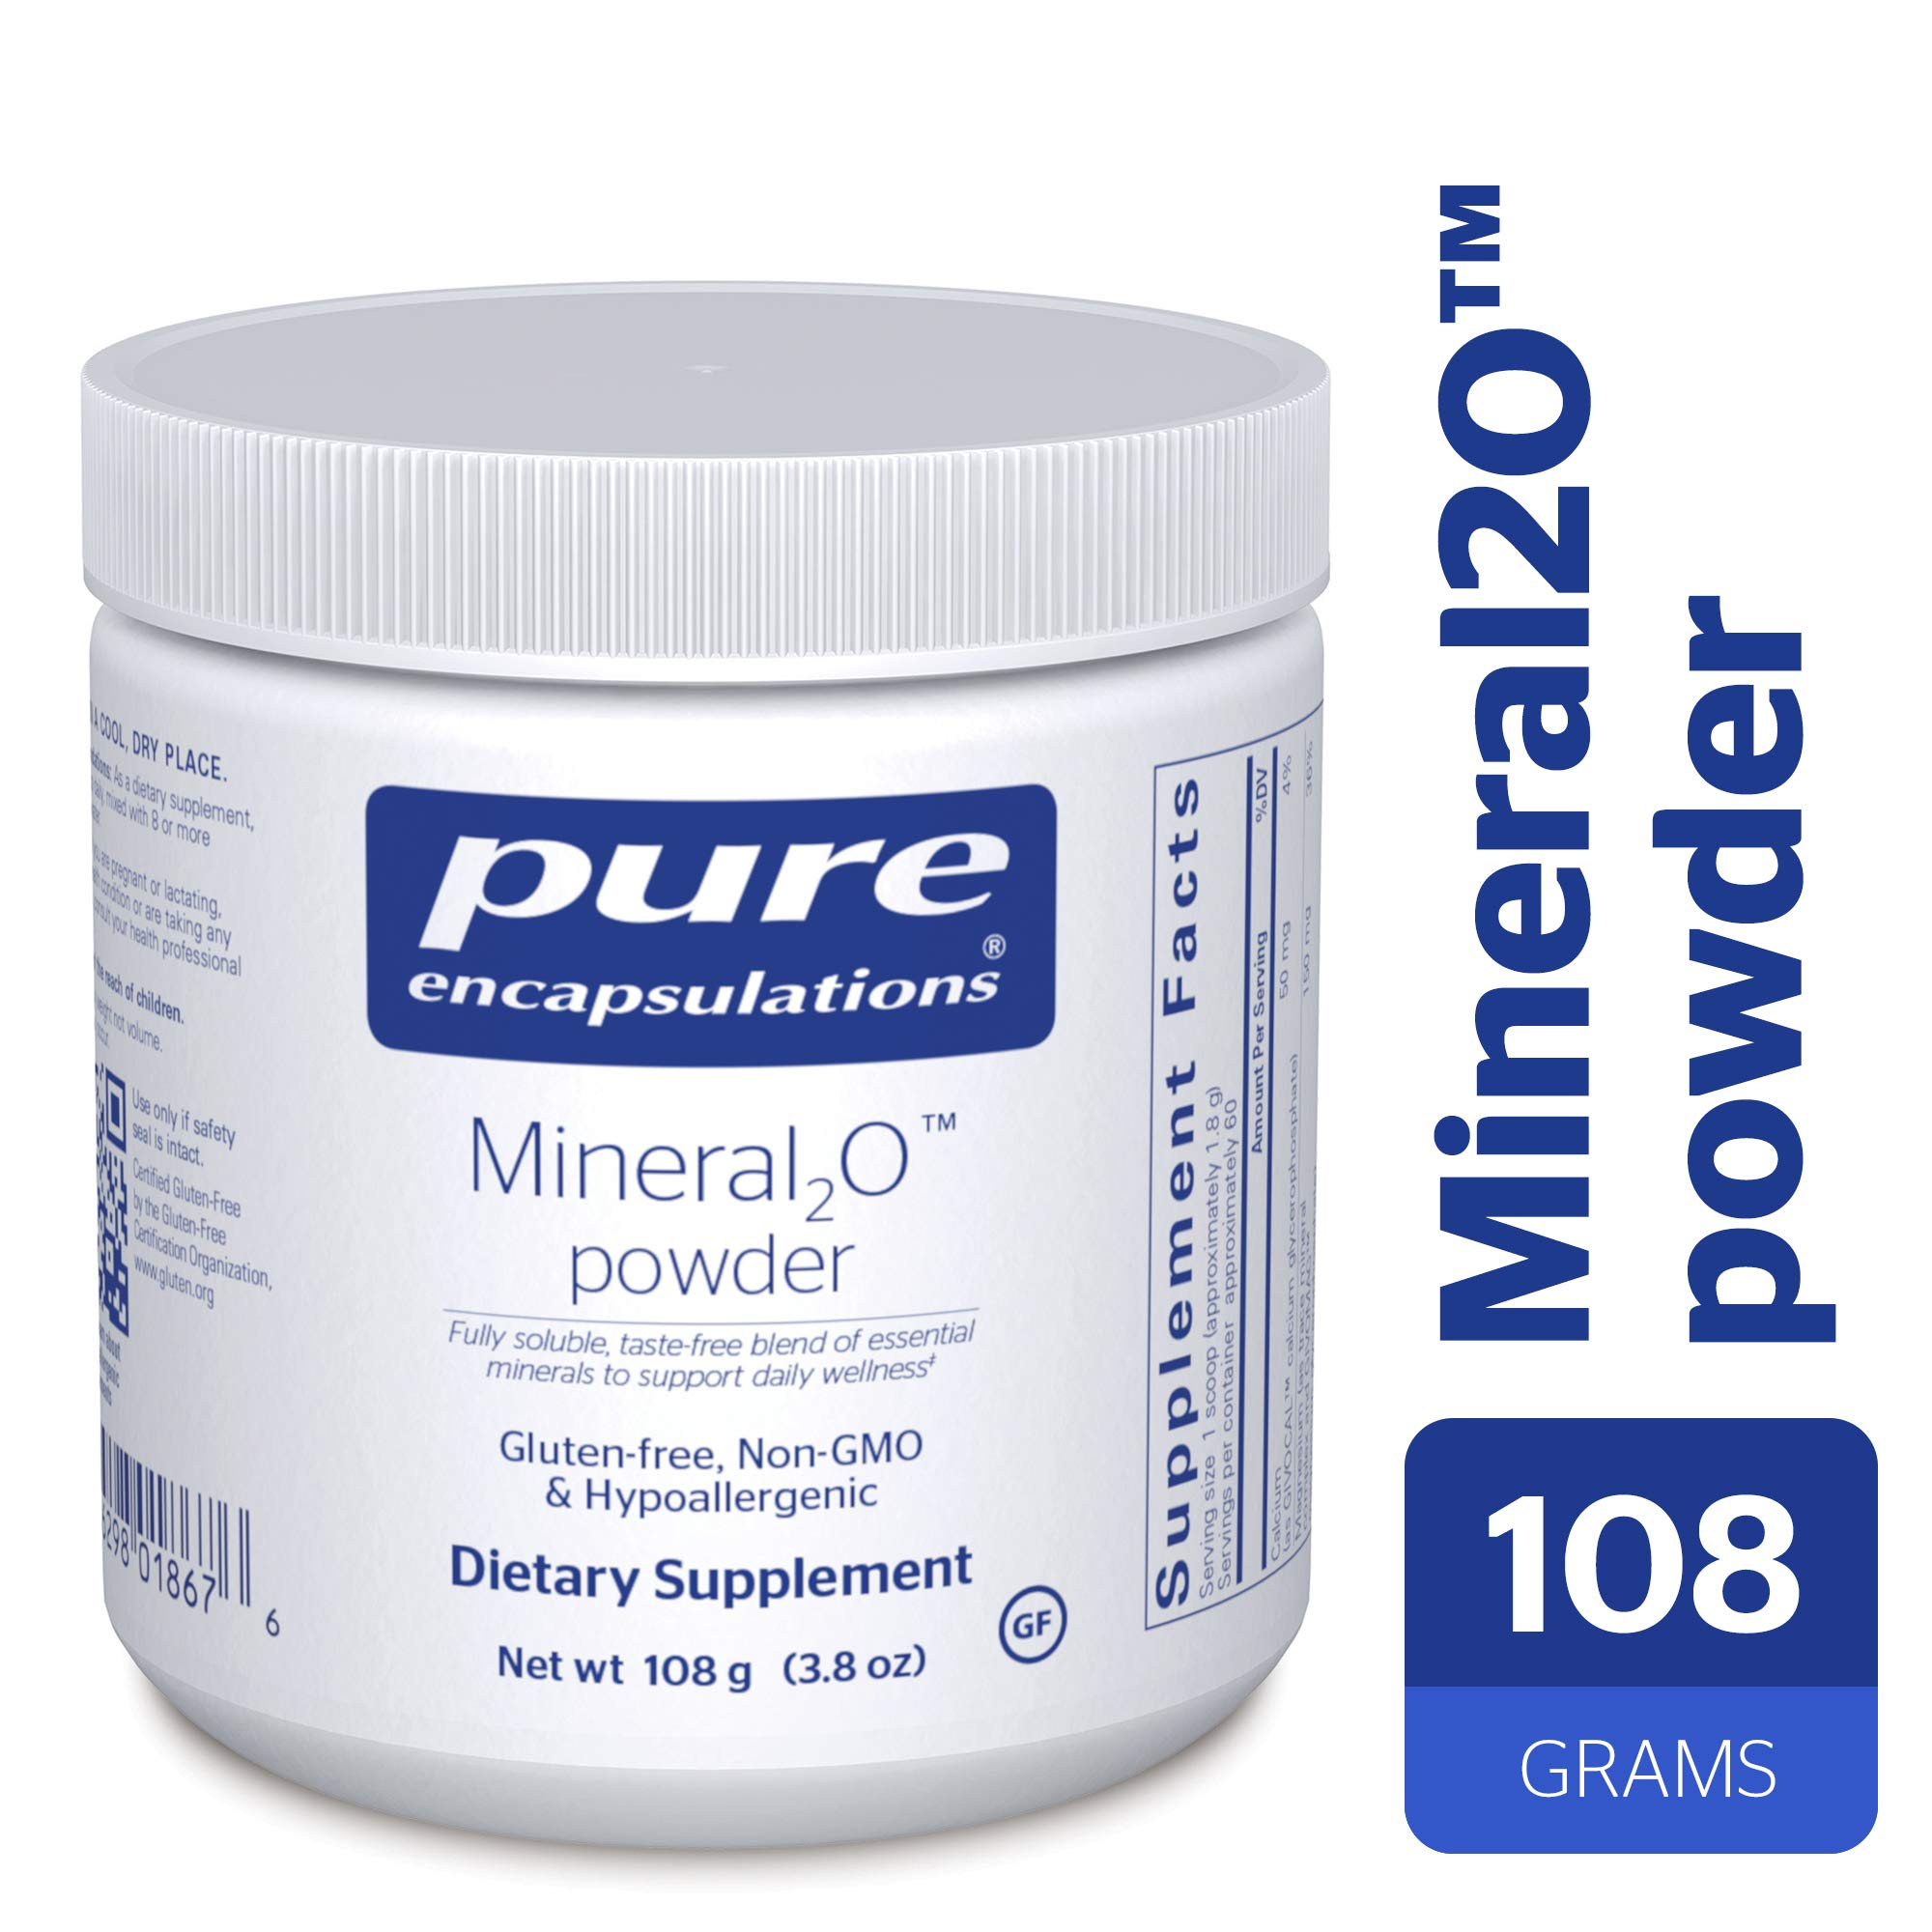 Pure Encapsulations - Mineral2O Powder - Mineral Water Enhancer - 108 Grams by Pure Encapsulations (Image #1)